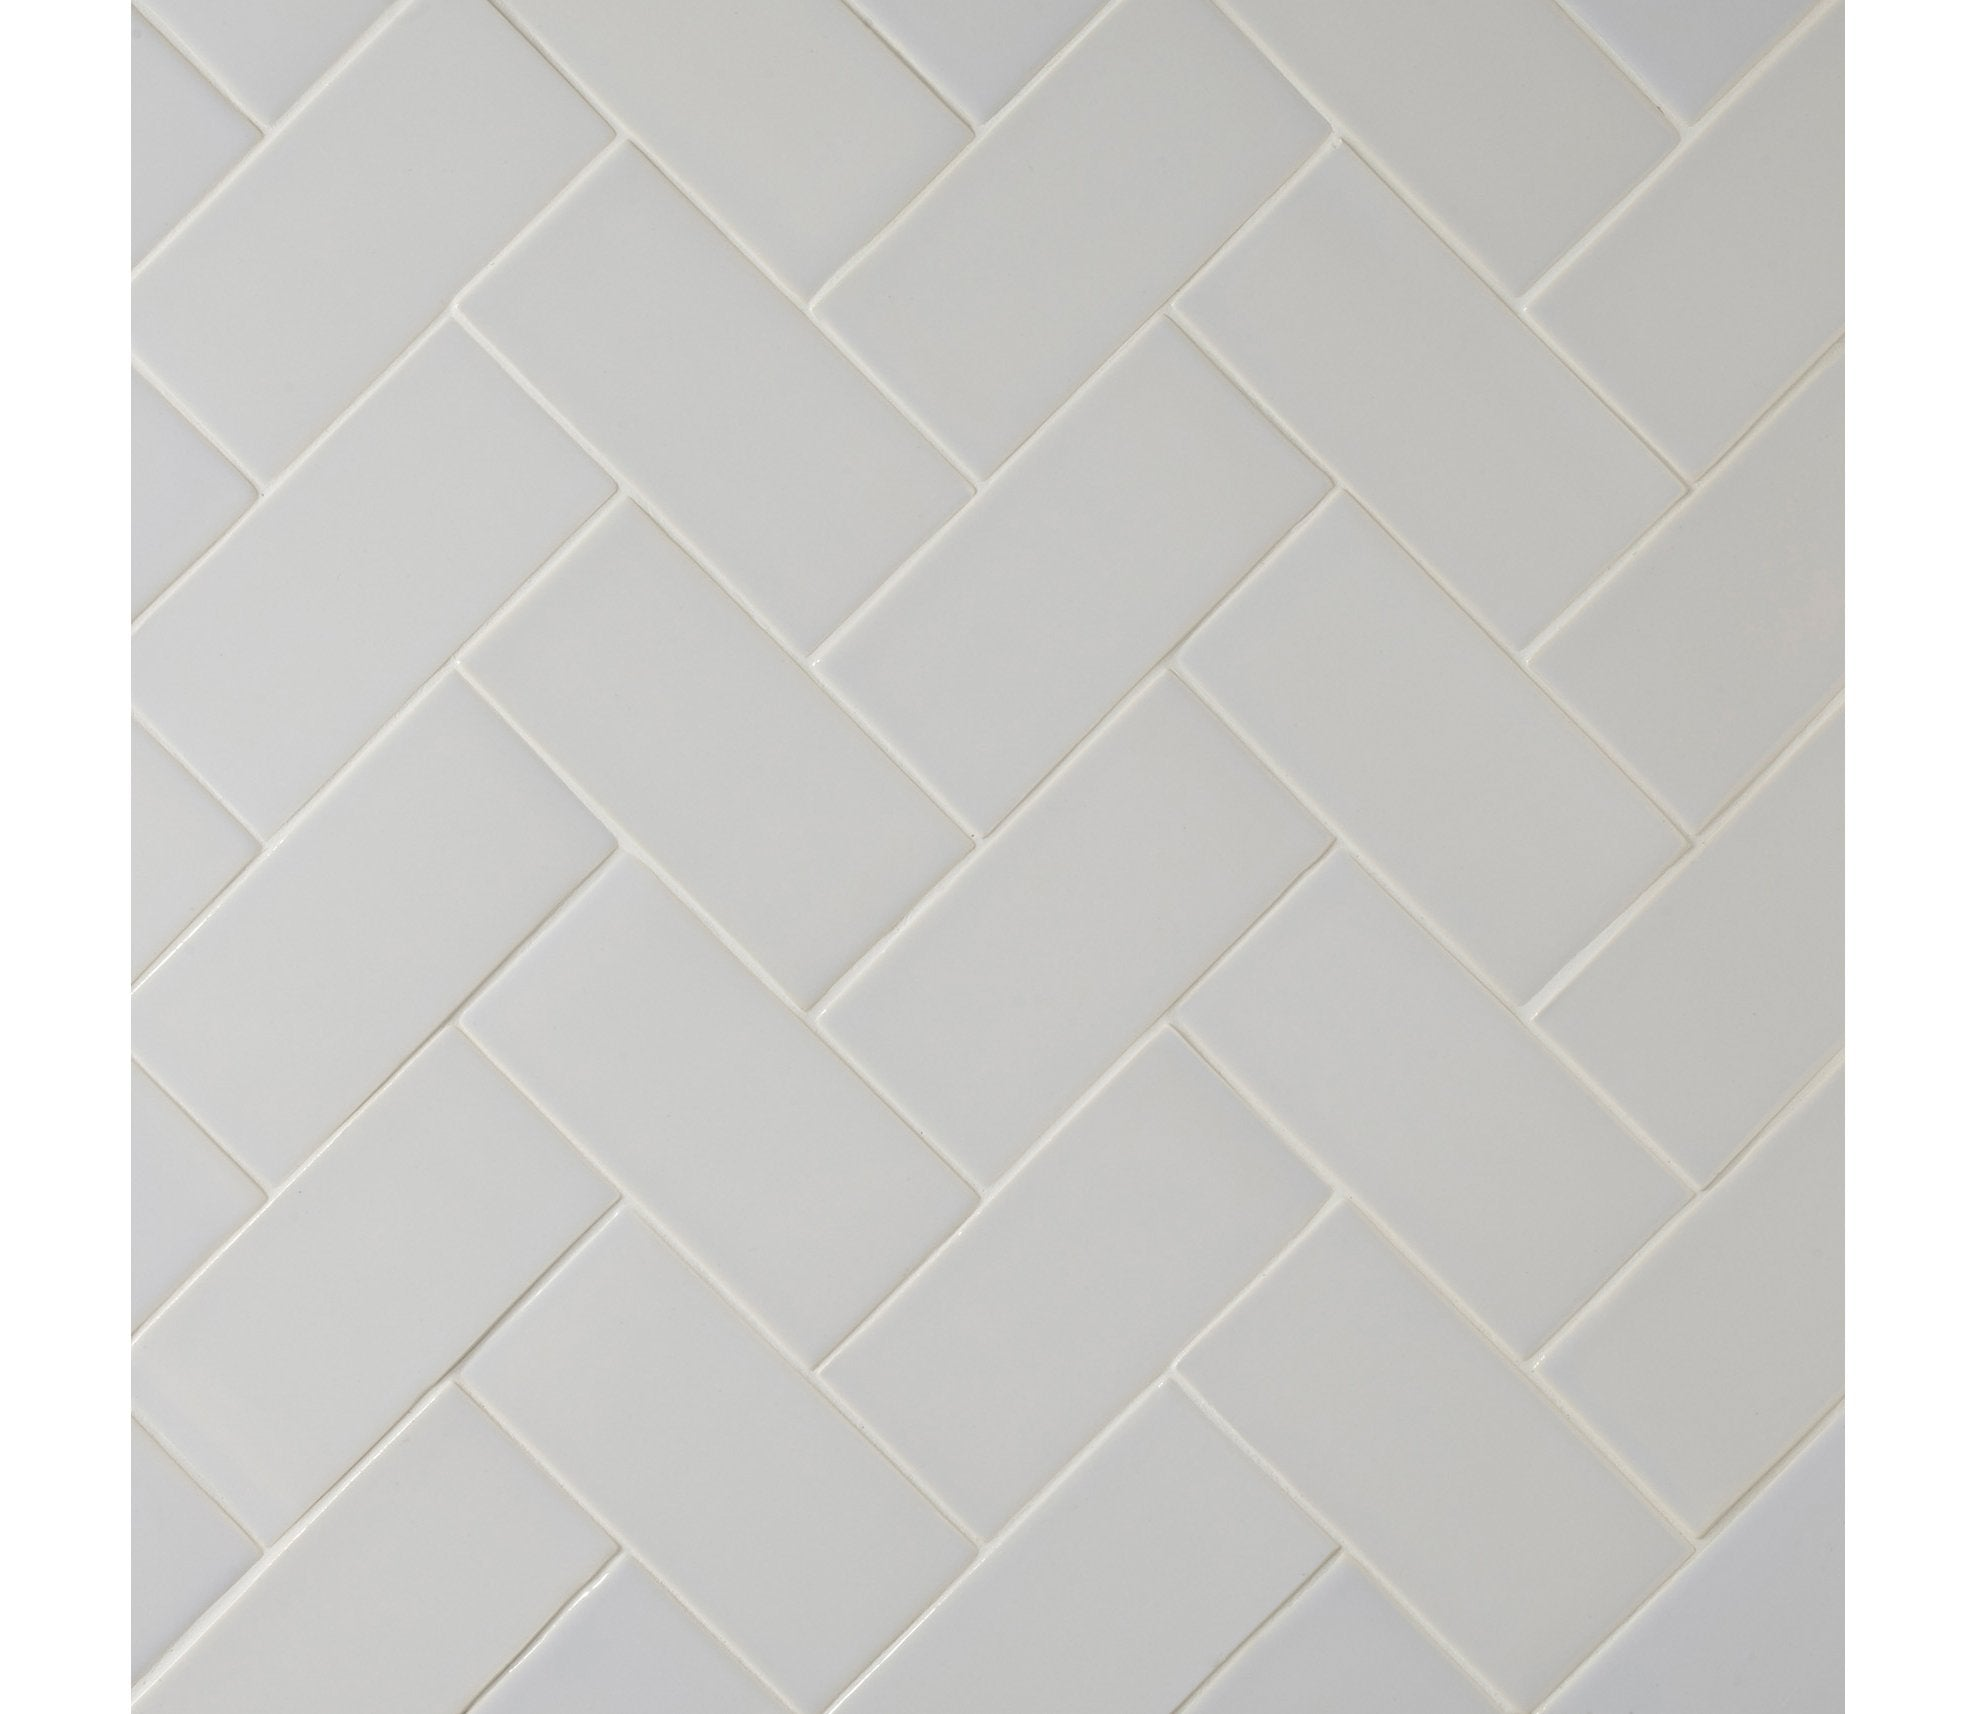 Hanley Traditional Tiles Product Image 33